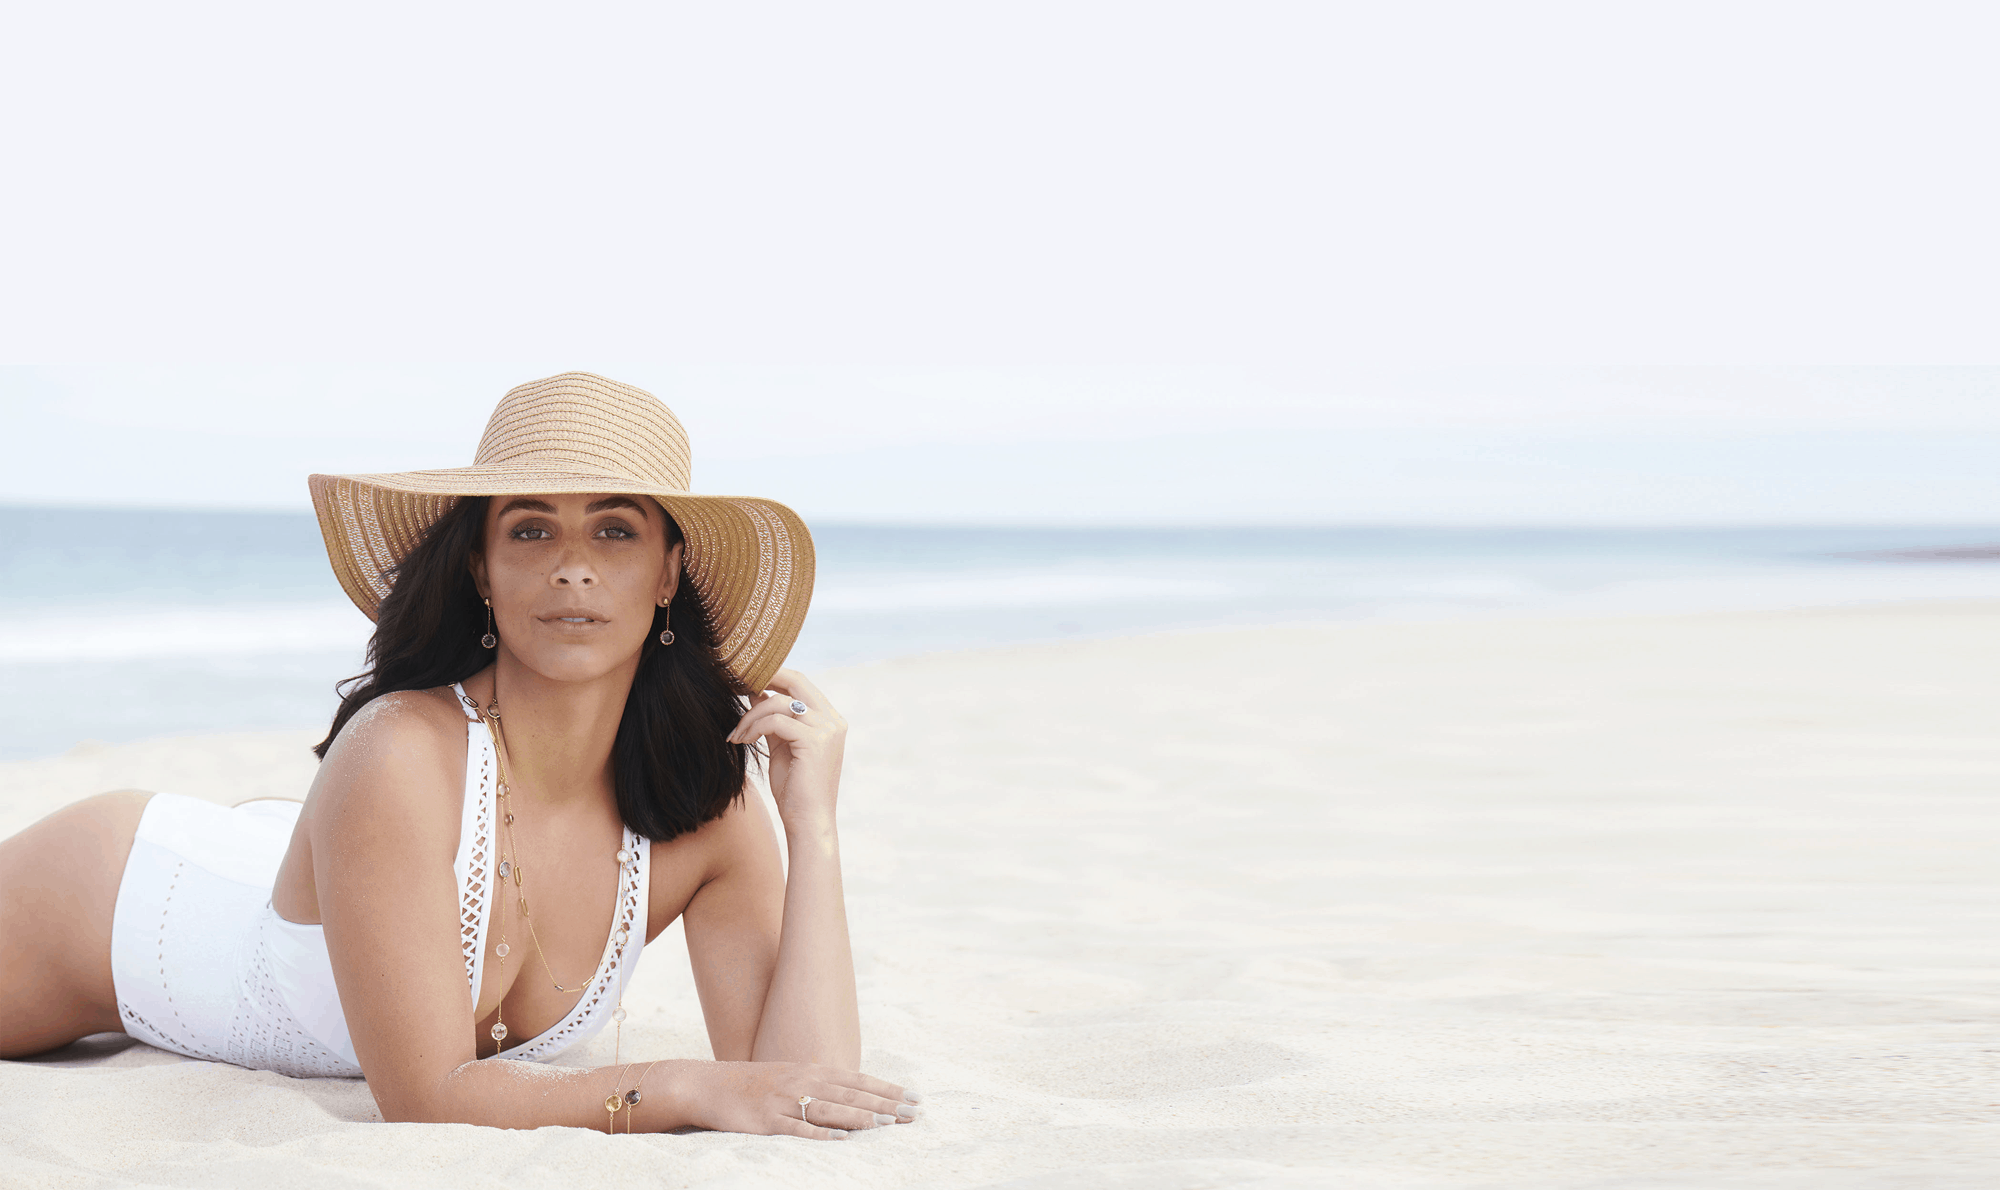 woman in beach wearing jewellery